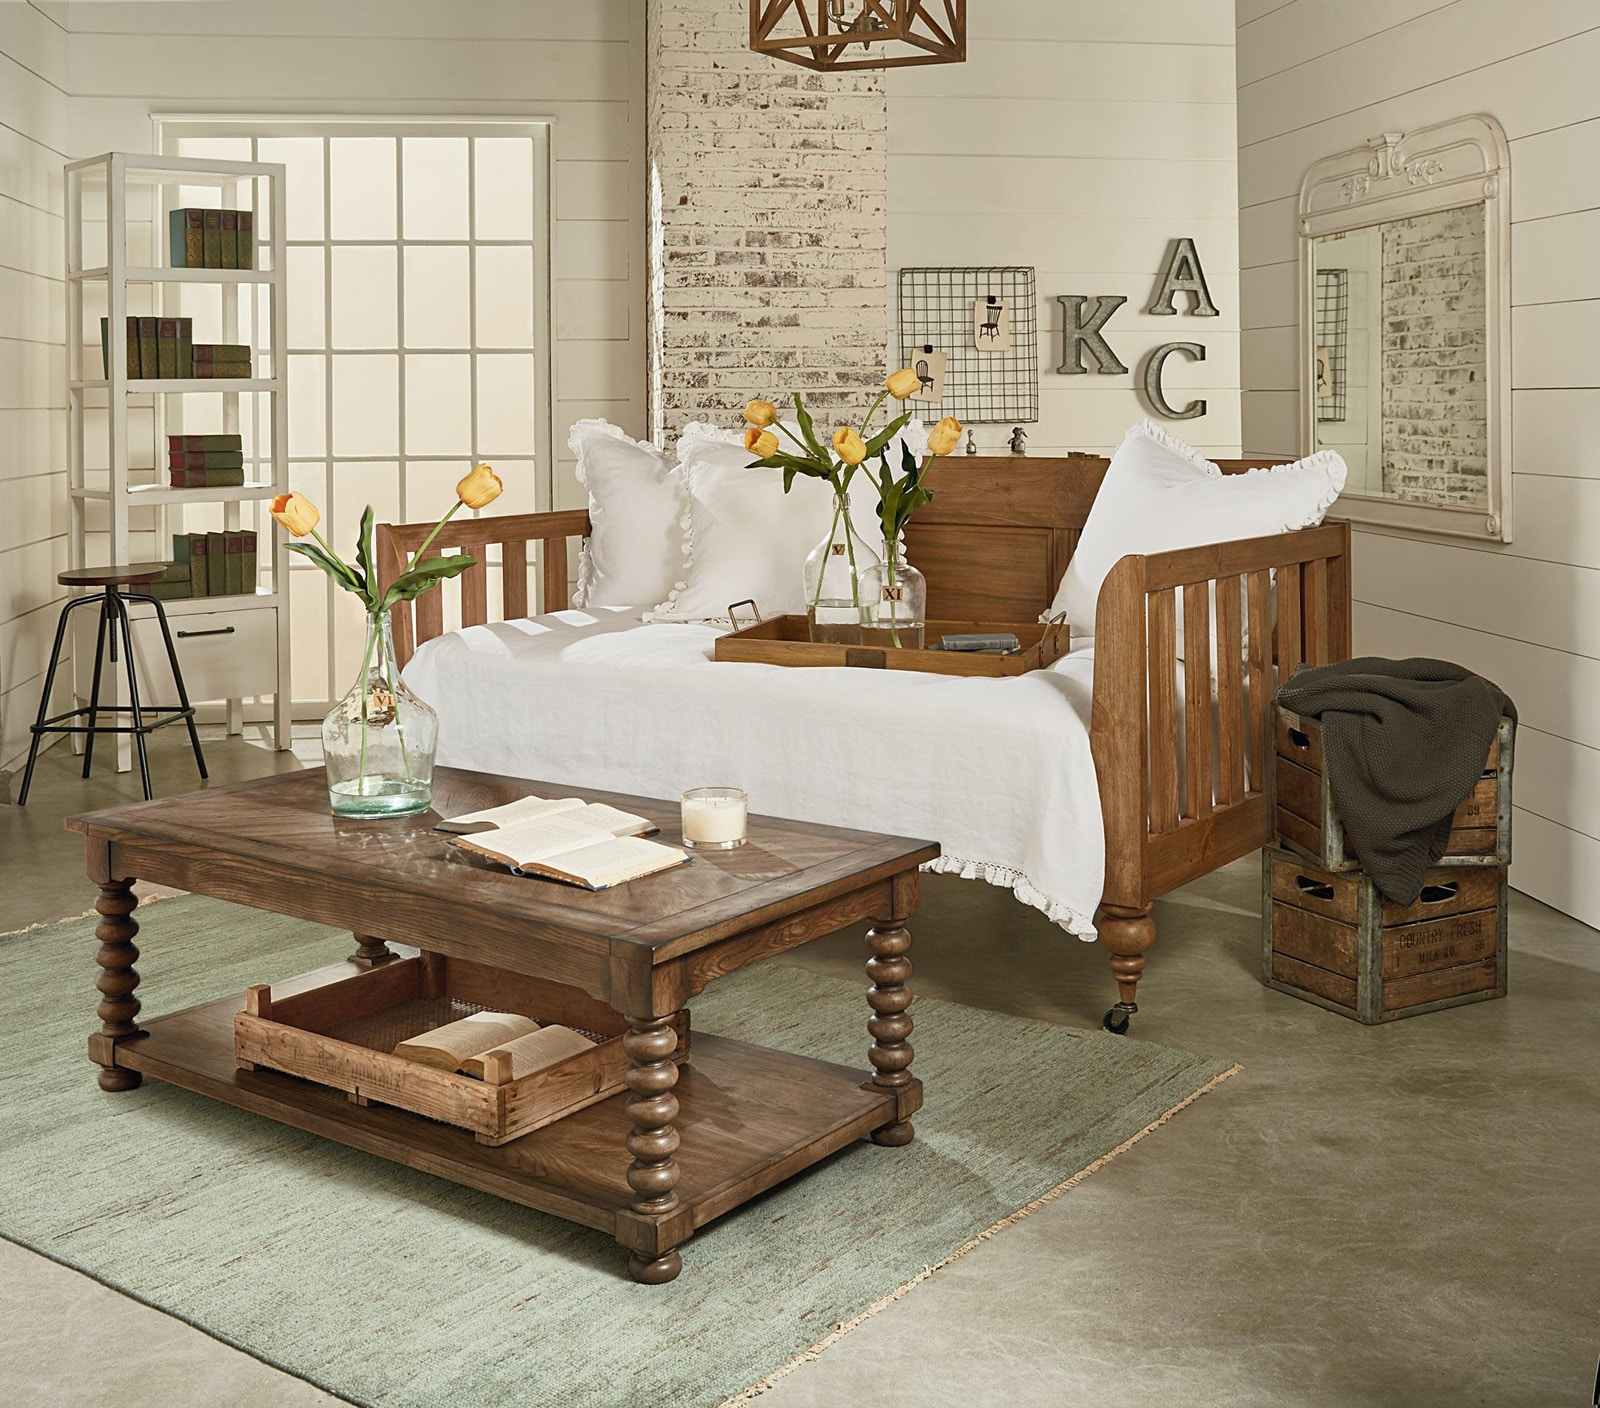 ... Furniture Fair Florence Ky By Magnolia Home Bedroom Primitive Elegance  Daybed 051509 ...